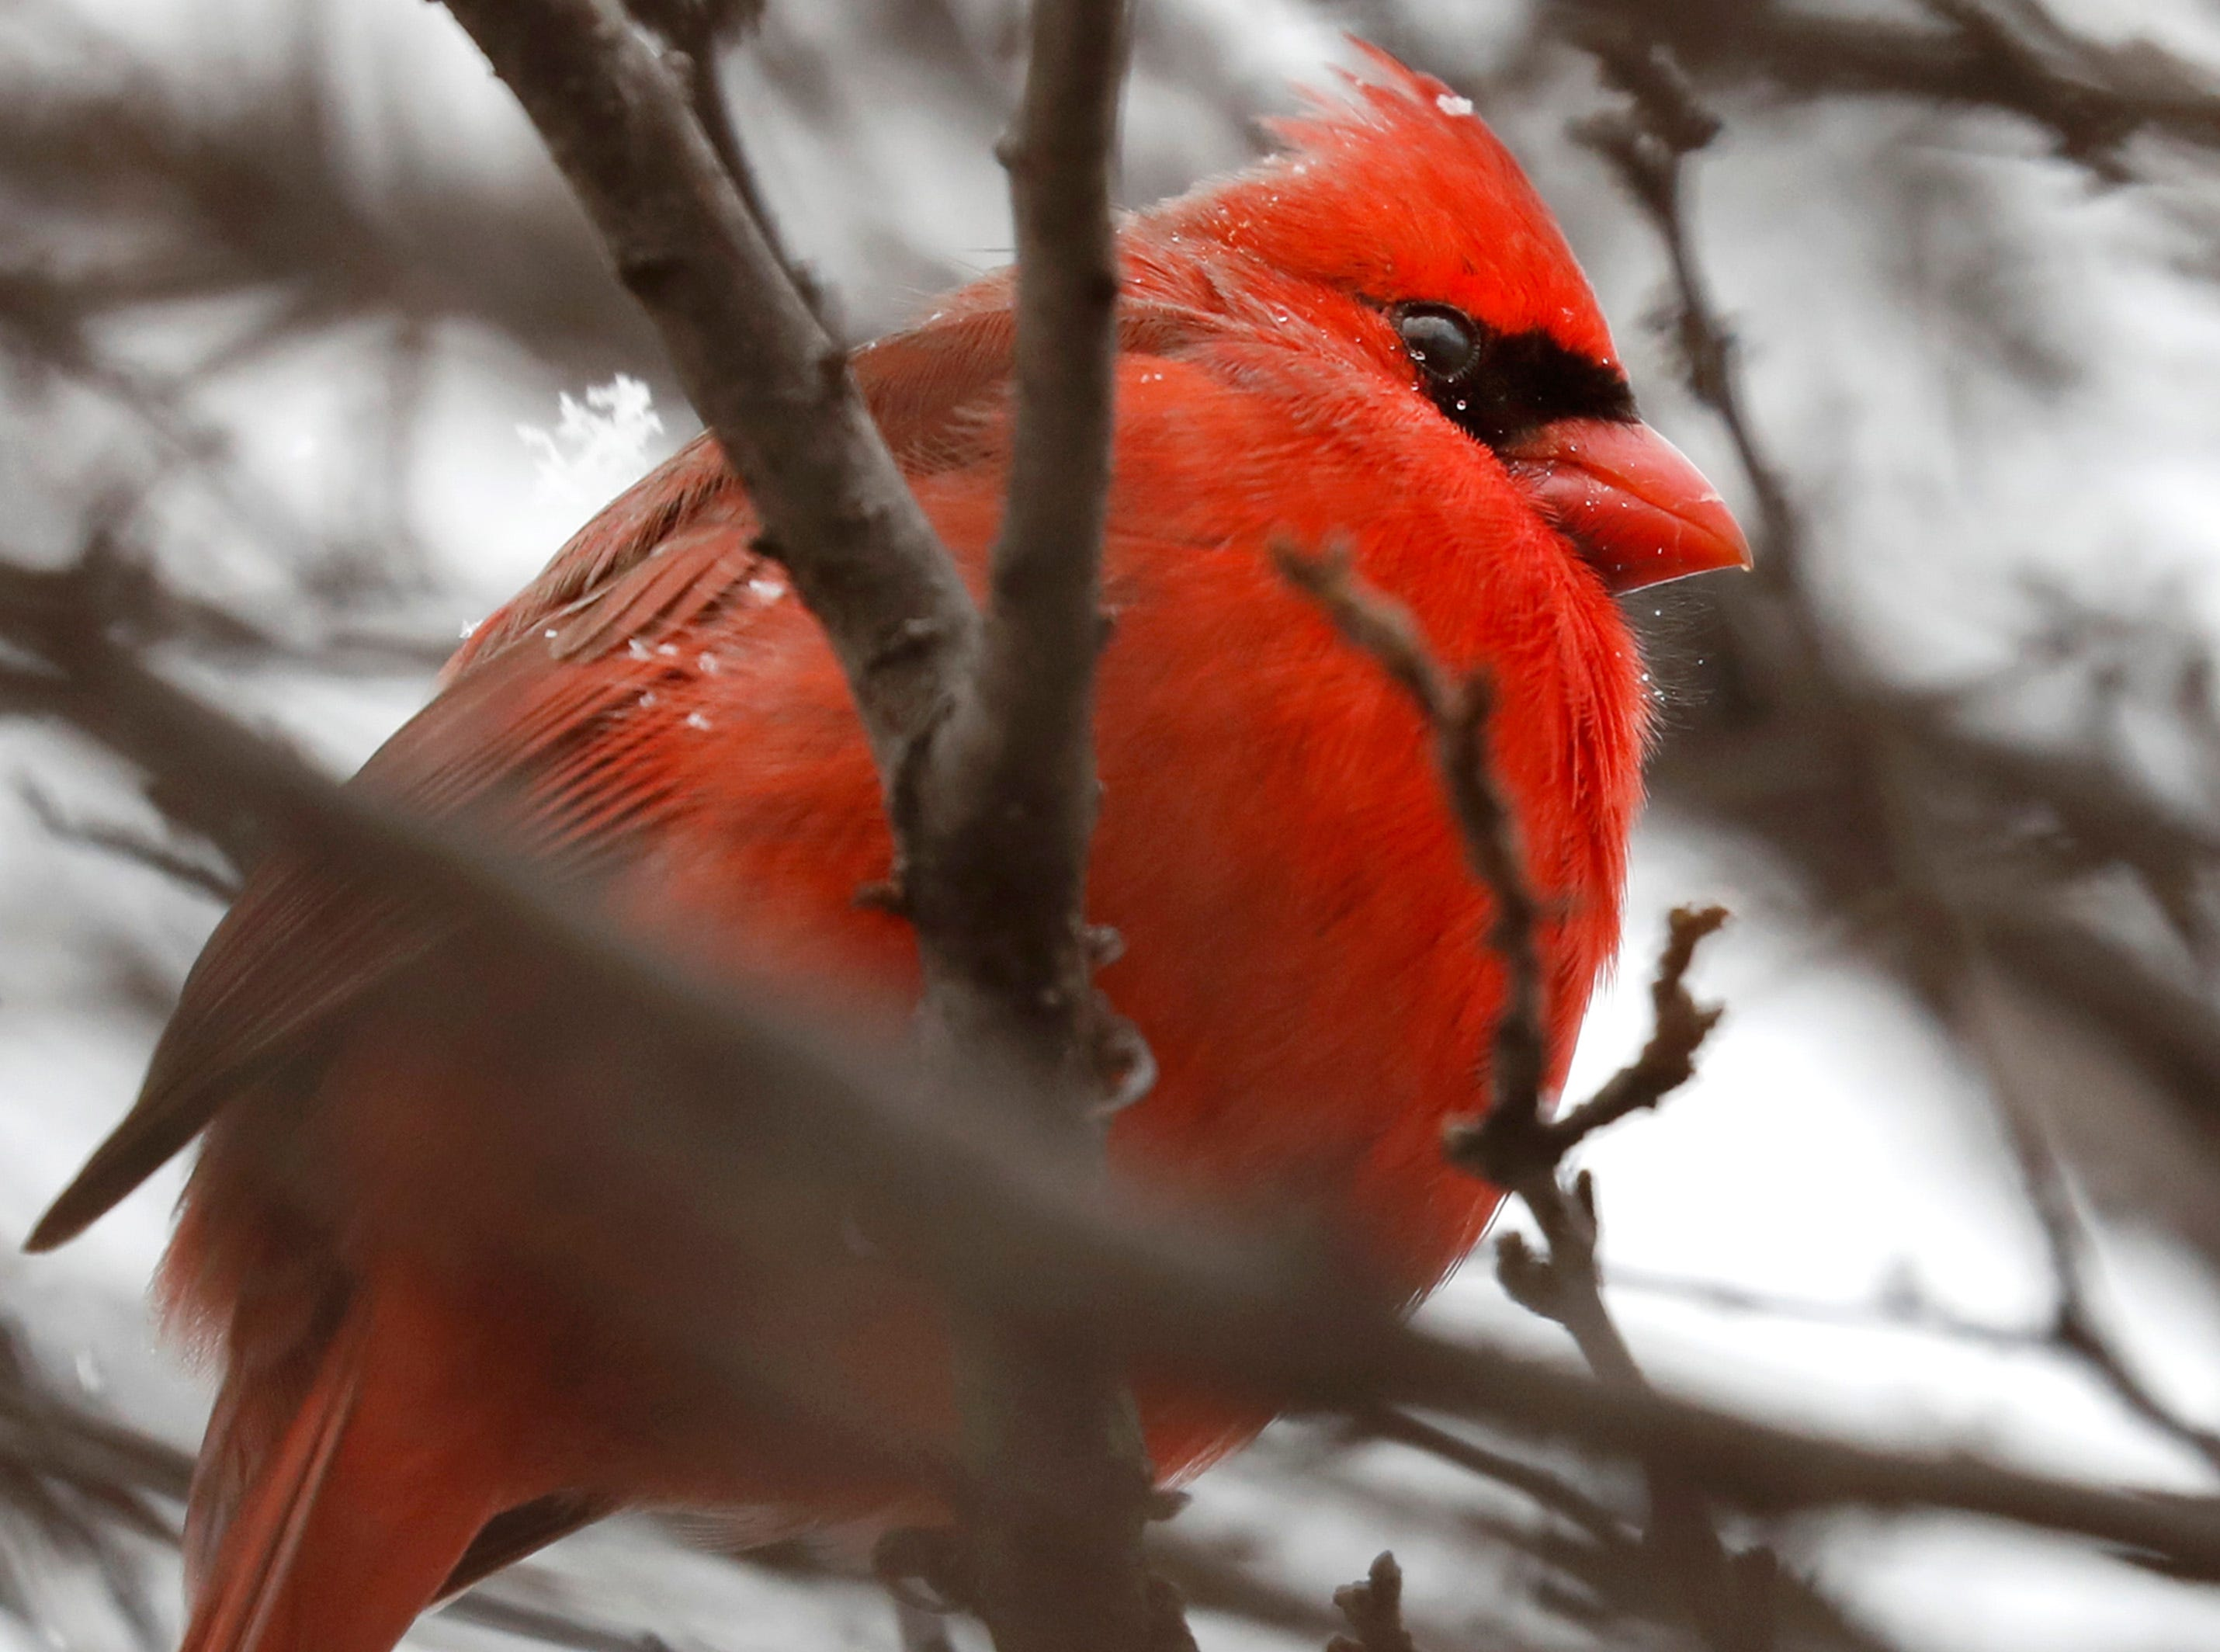 Snowflakes fall on a cardinal as it rests on a branch Thursday, Jan. 17, 2019, in Appleton, Wis.